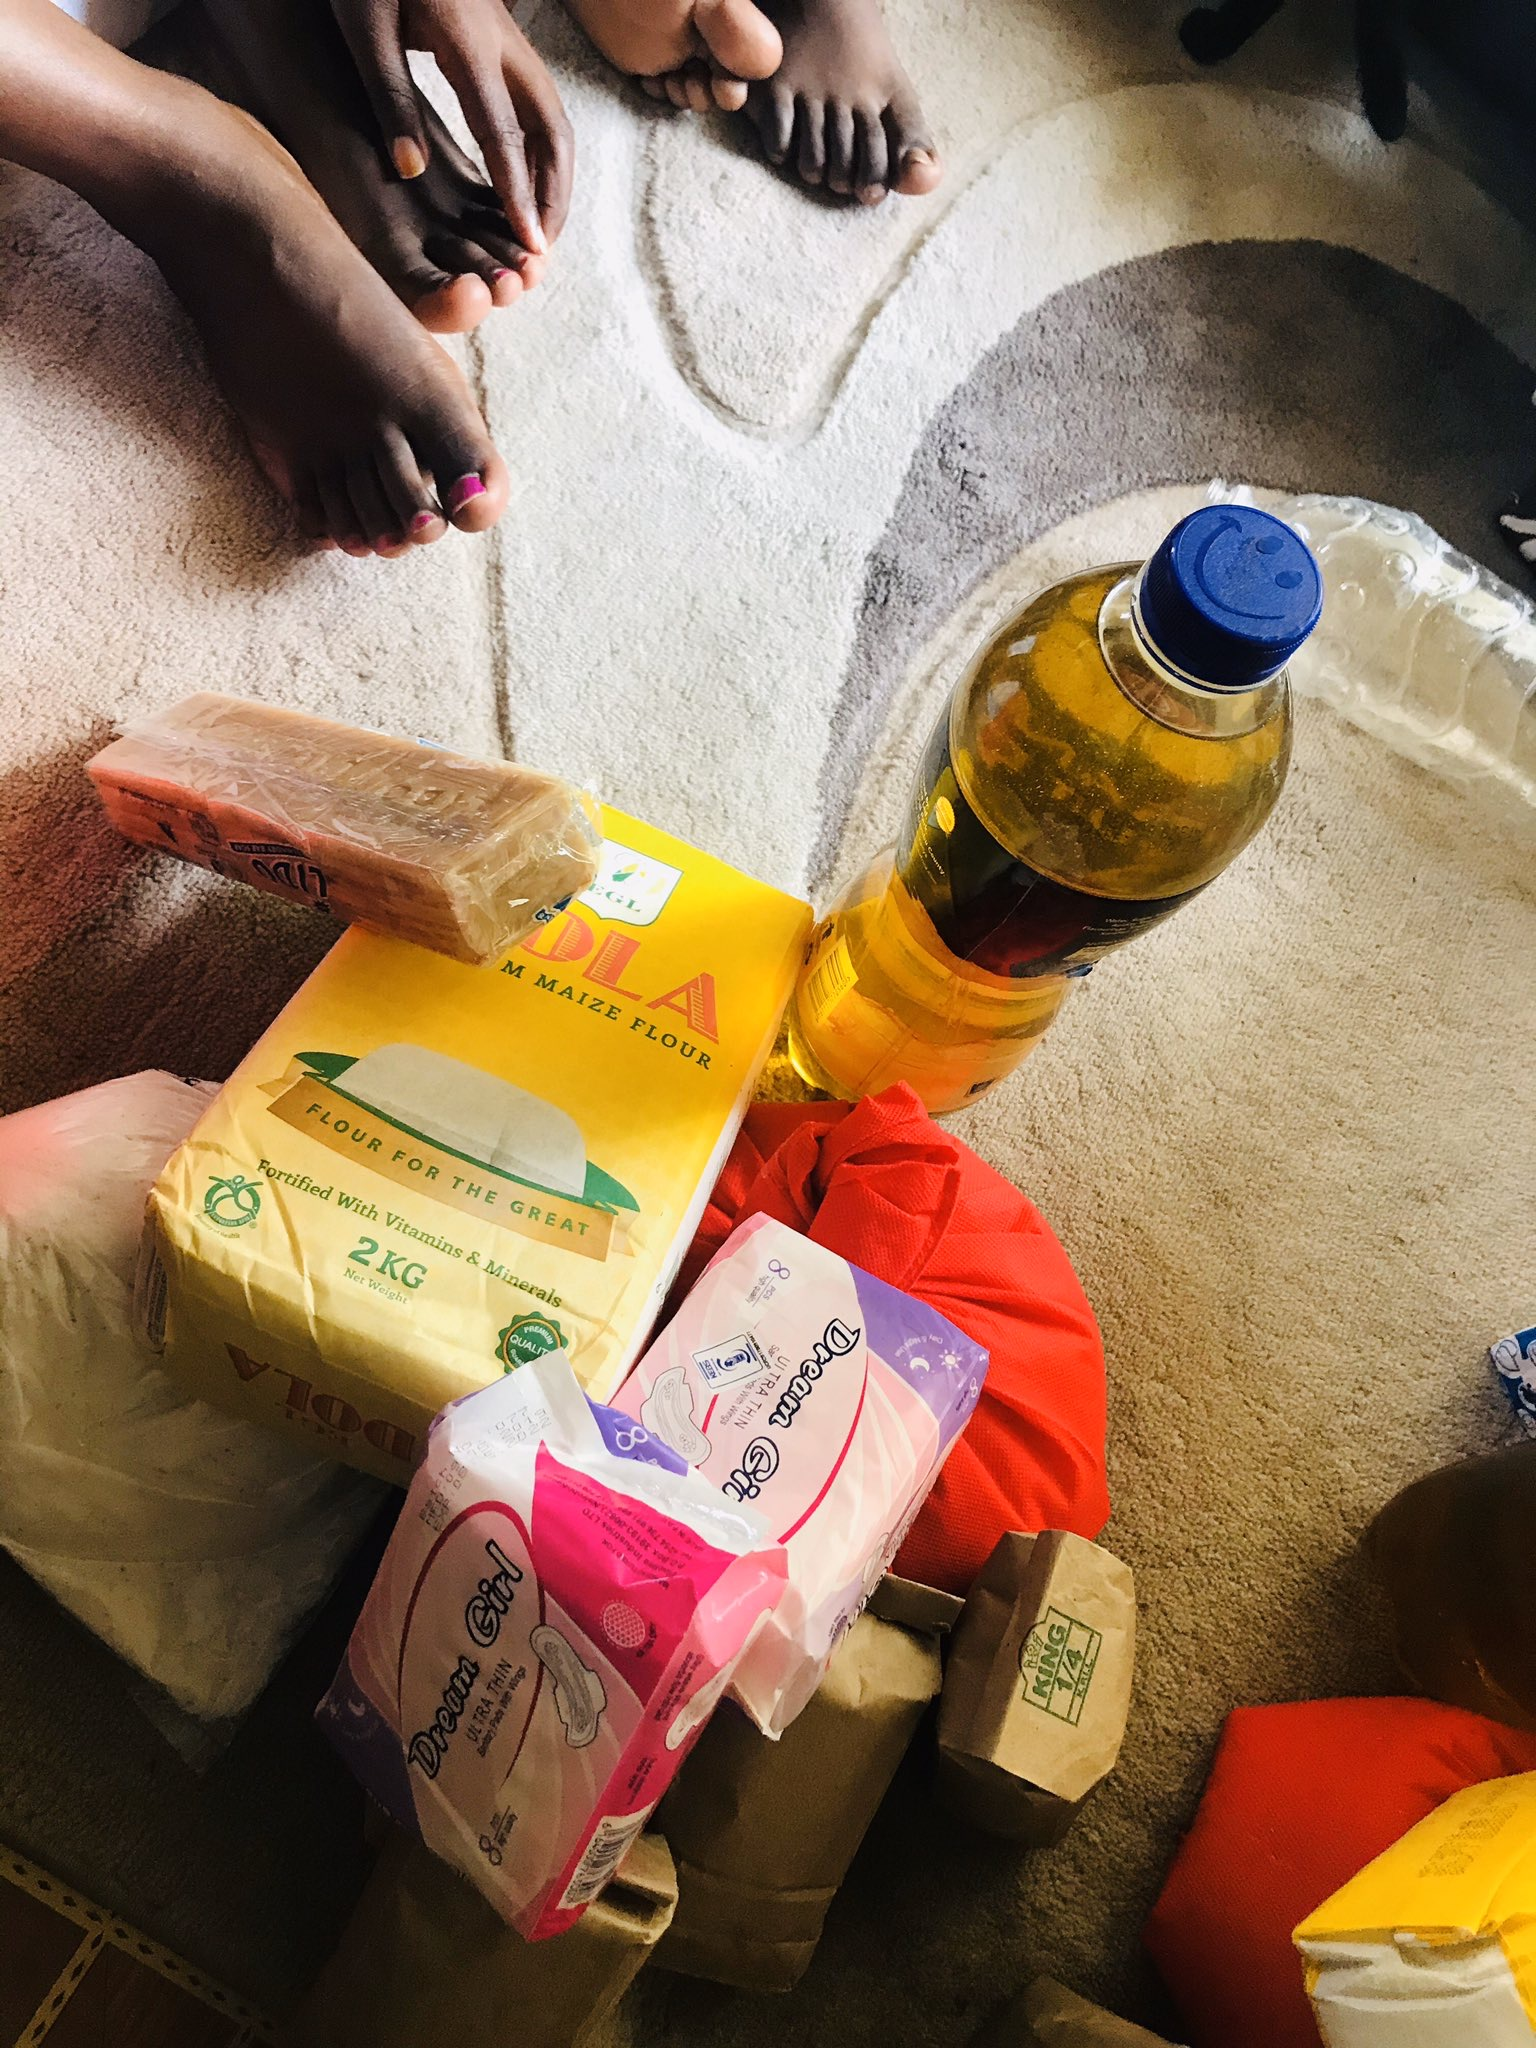 Corn flour, pads, oil, and other items received during the Covid-19 aid drive.